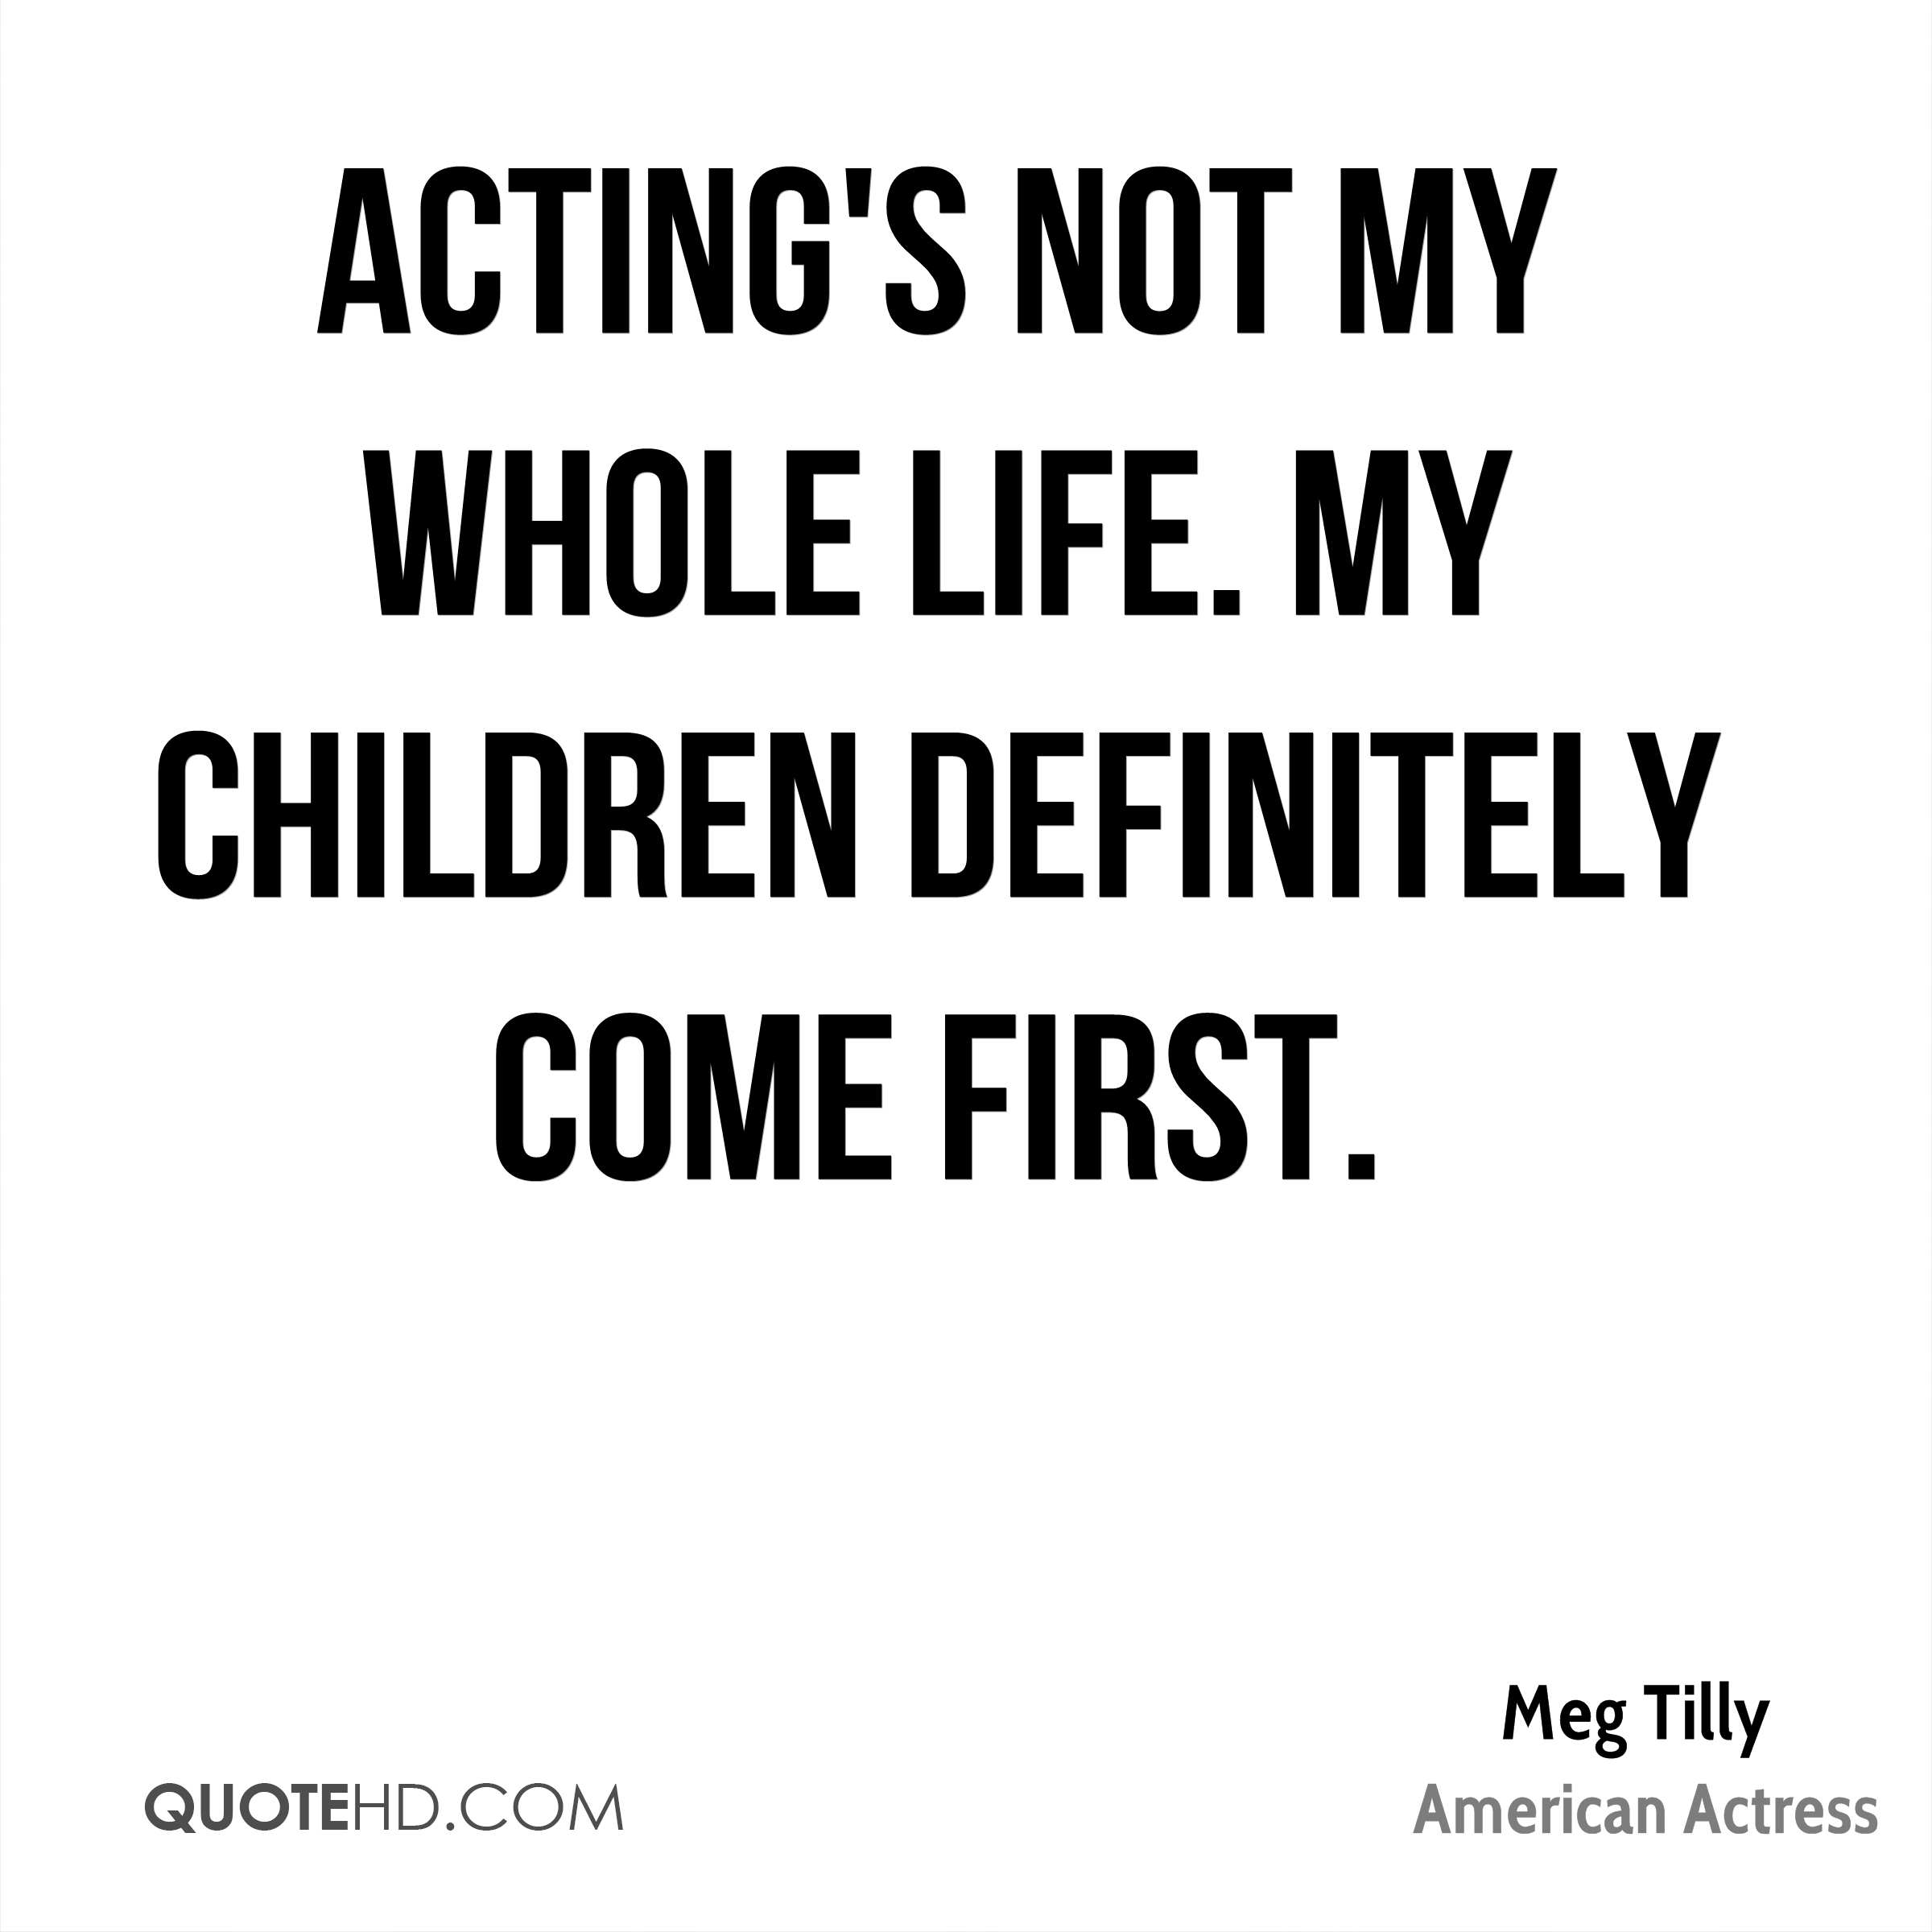 Meg Tilly Quotes | QuoteHD